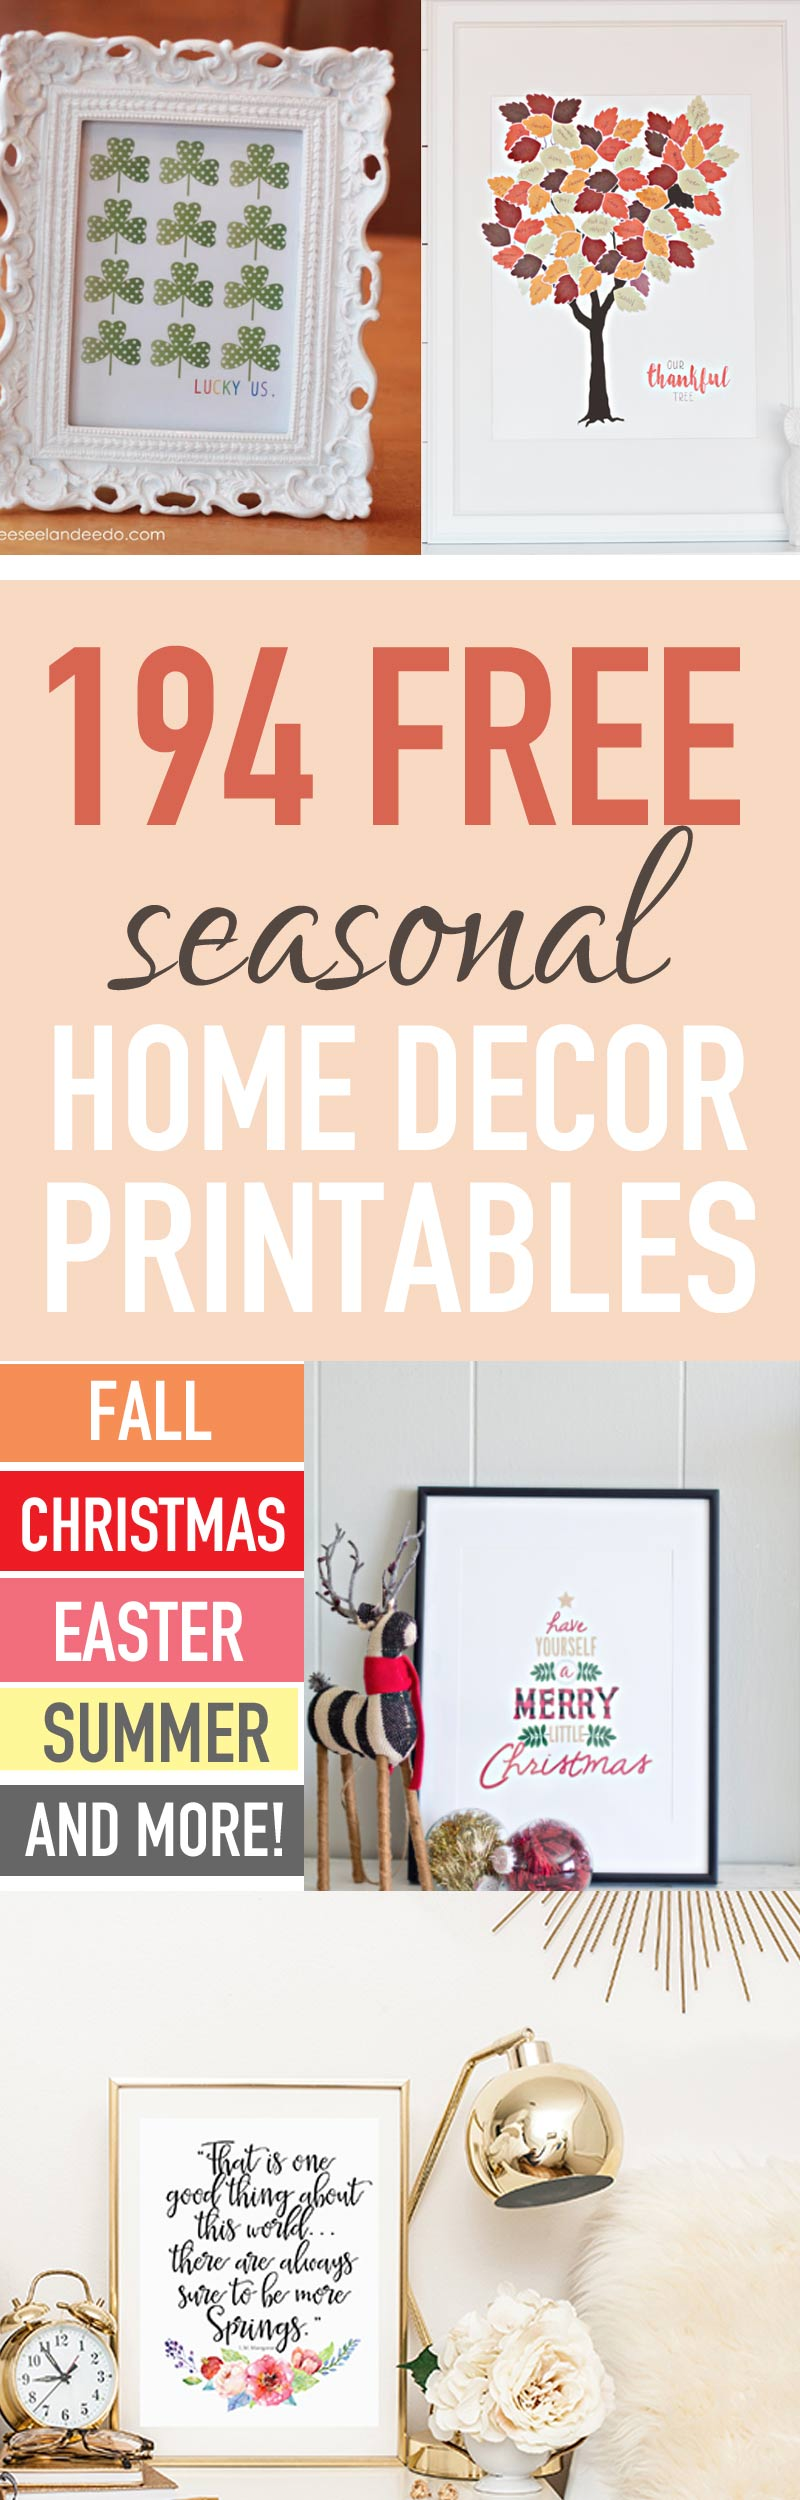 photo relating to Free Printables for Home called Adorn Your Residence Seasonally for Cost-free (250+ Totally free Dwelling Decor